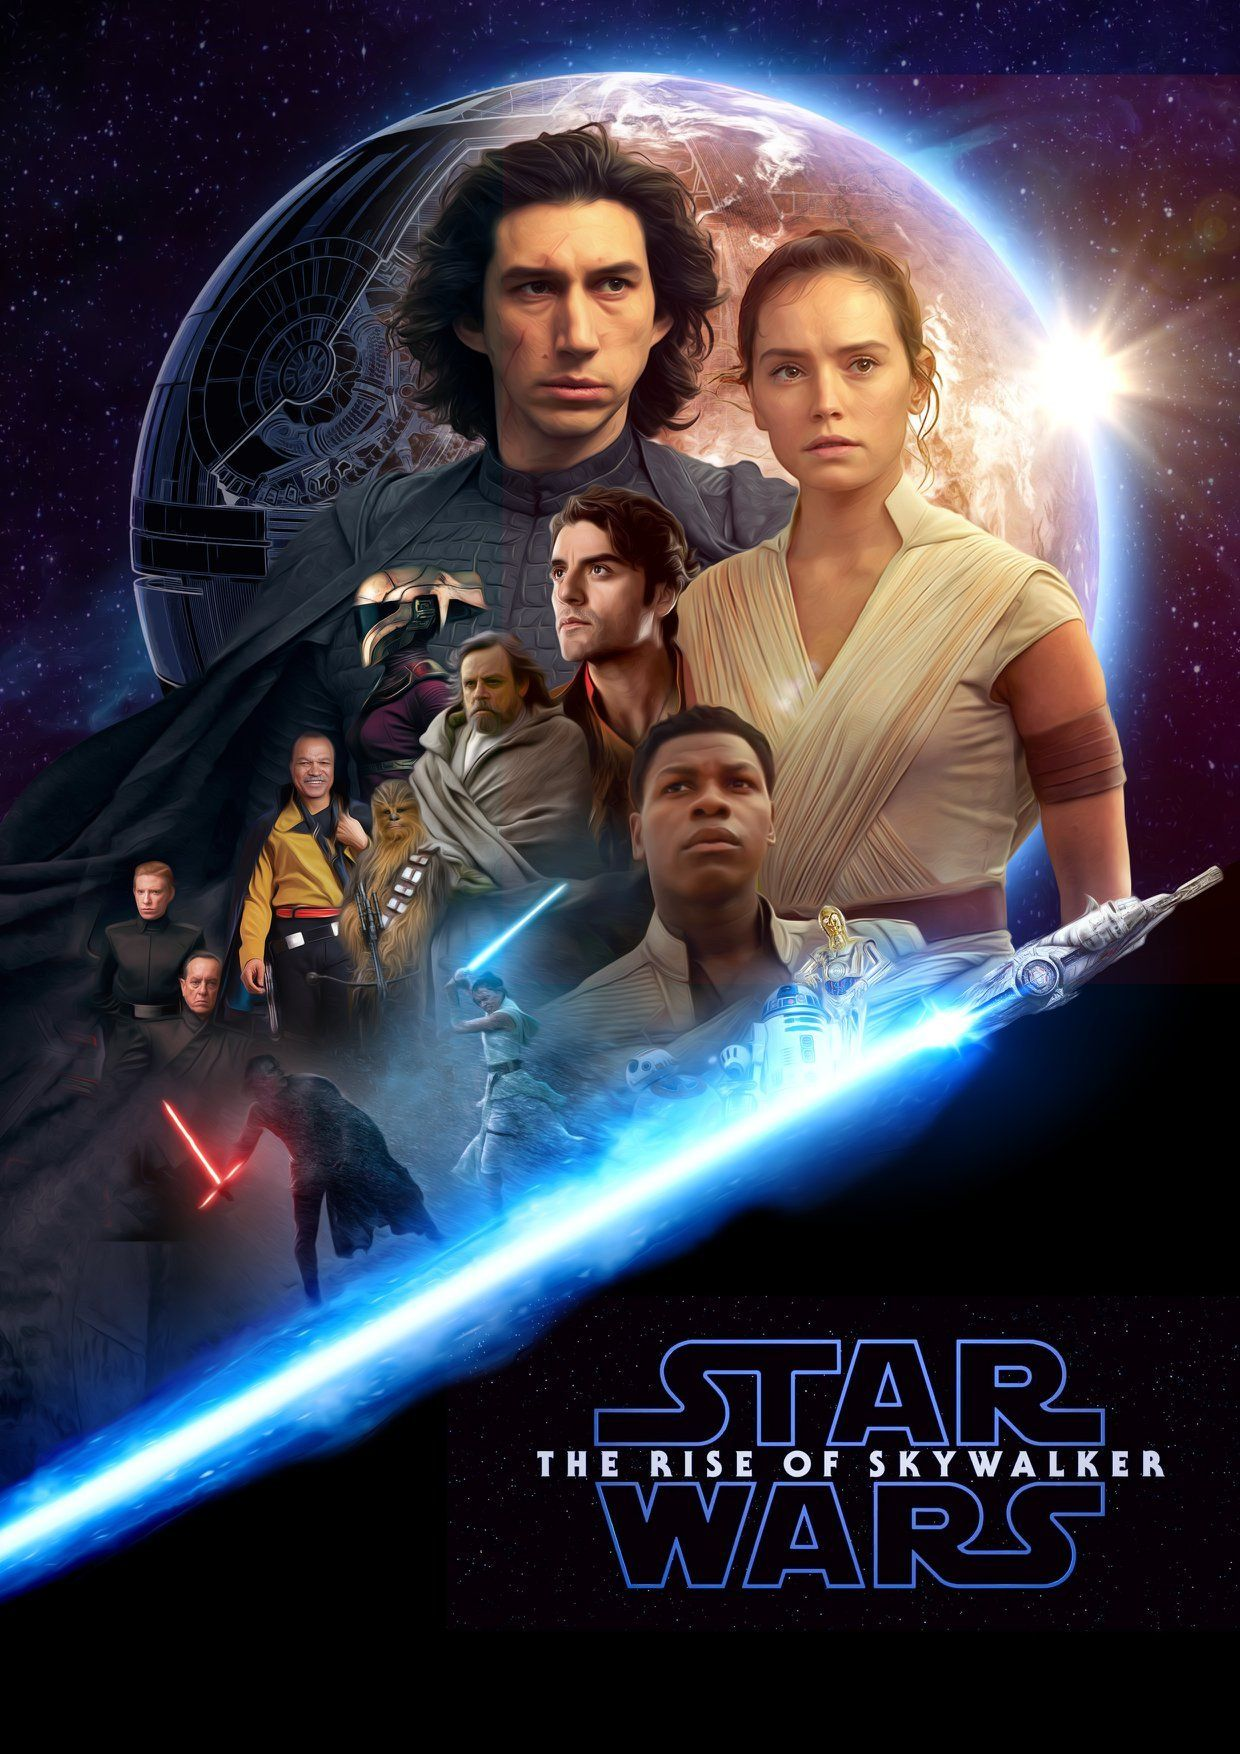 Star Wars Episode Ix The Rise Of Skywalker 2019 Movie Online Onstreaming Full Hd The Rise Of Skywalok Star Wars Episodes Star Wars Watch Star Wars Pictures